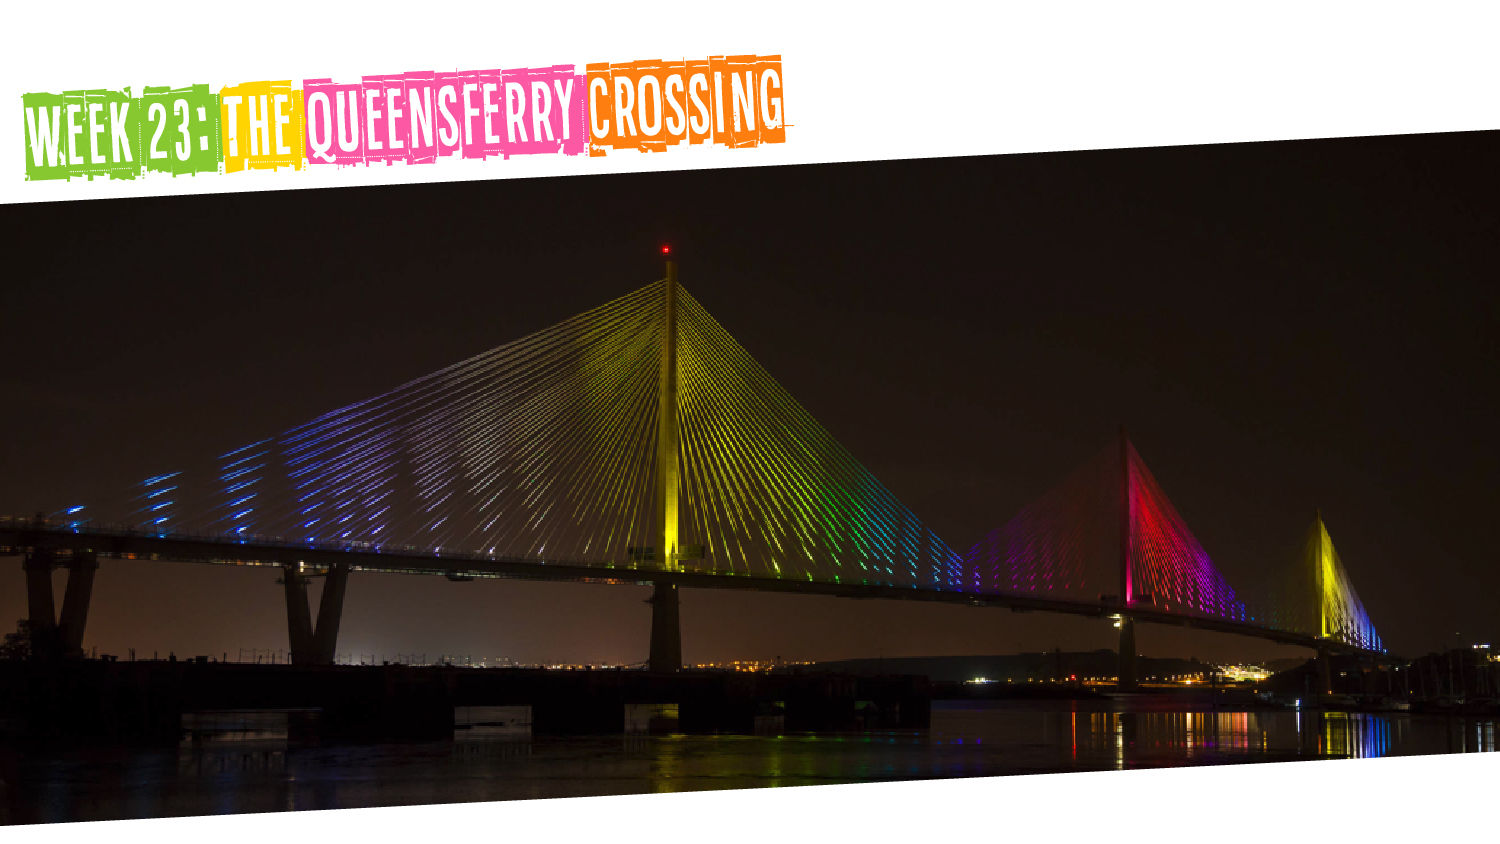 IYM Week 23: The Queensferry Crossing